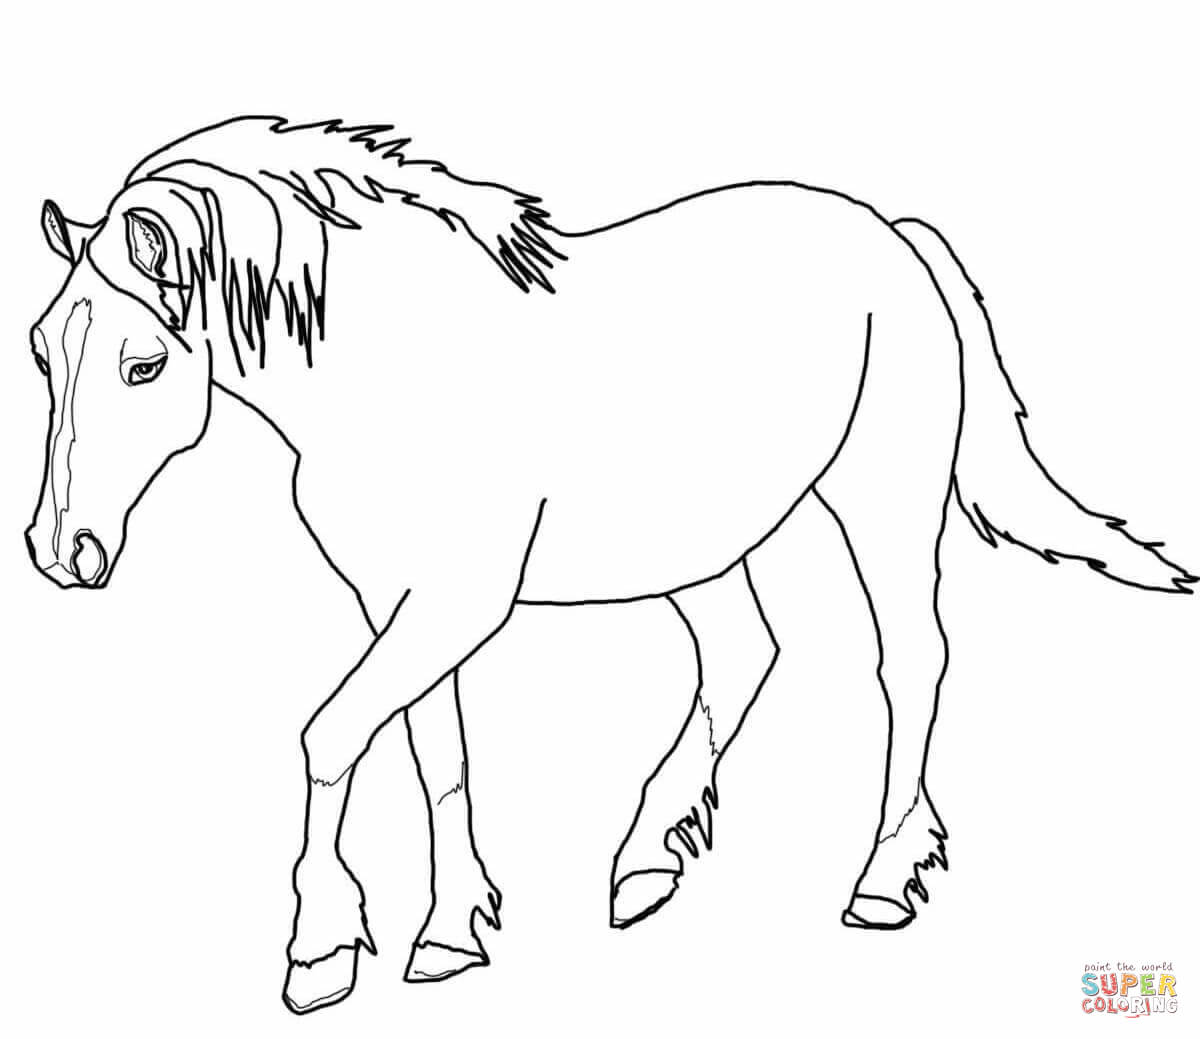 printable horse colouring pages horses a cute horse running in the farm coloring page pages colouring printable horse